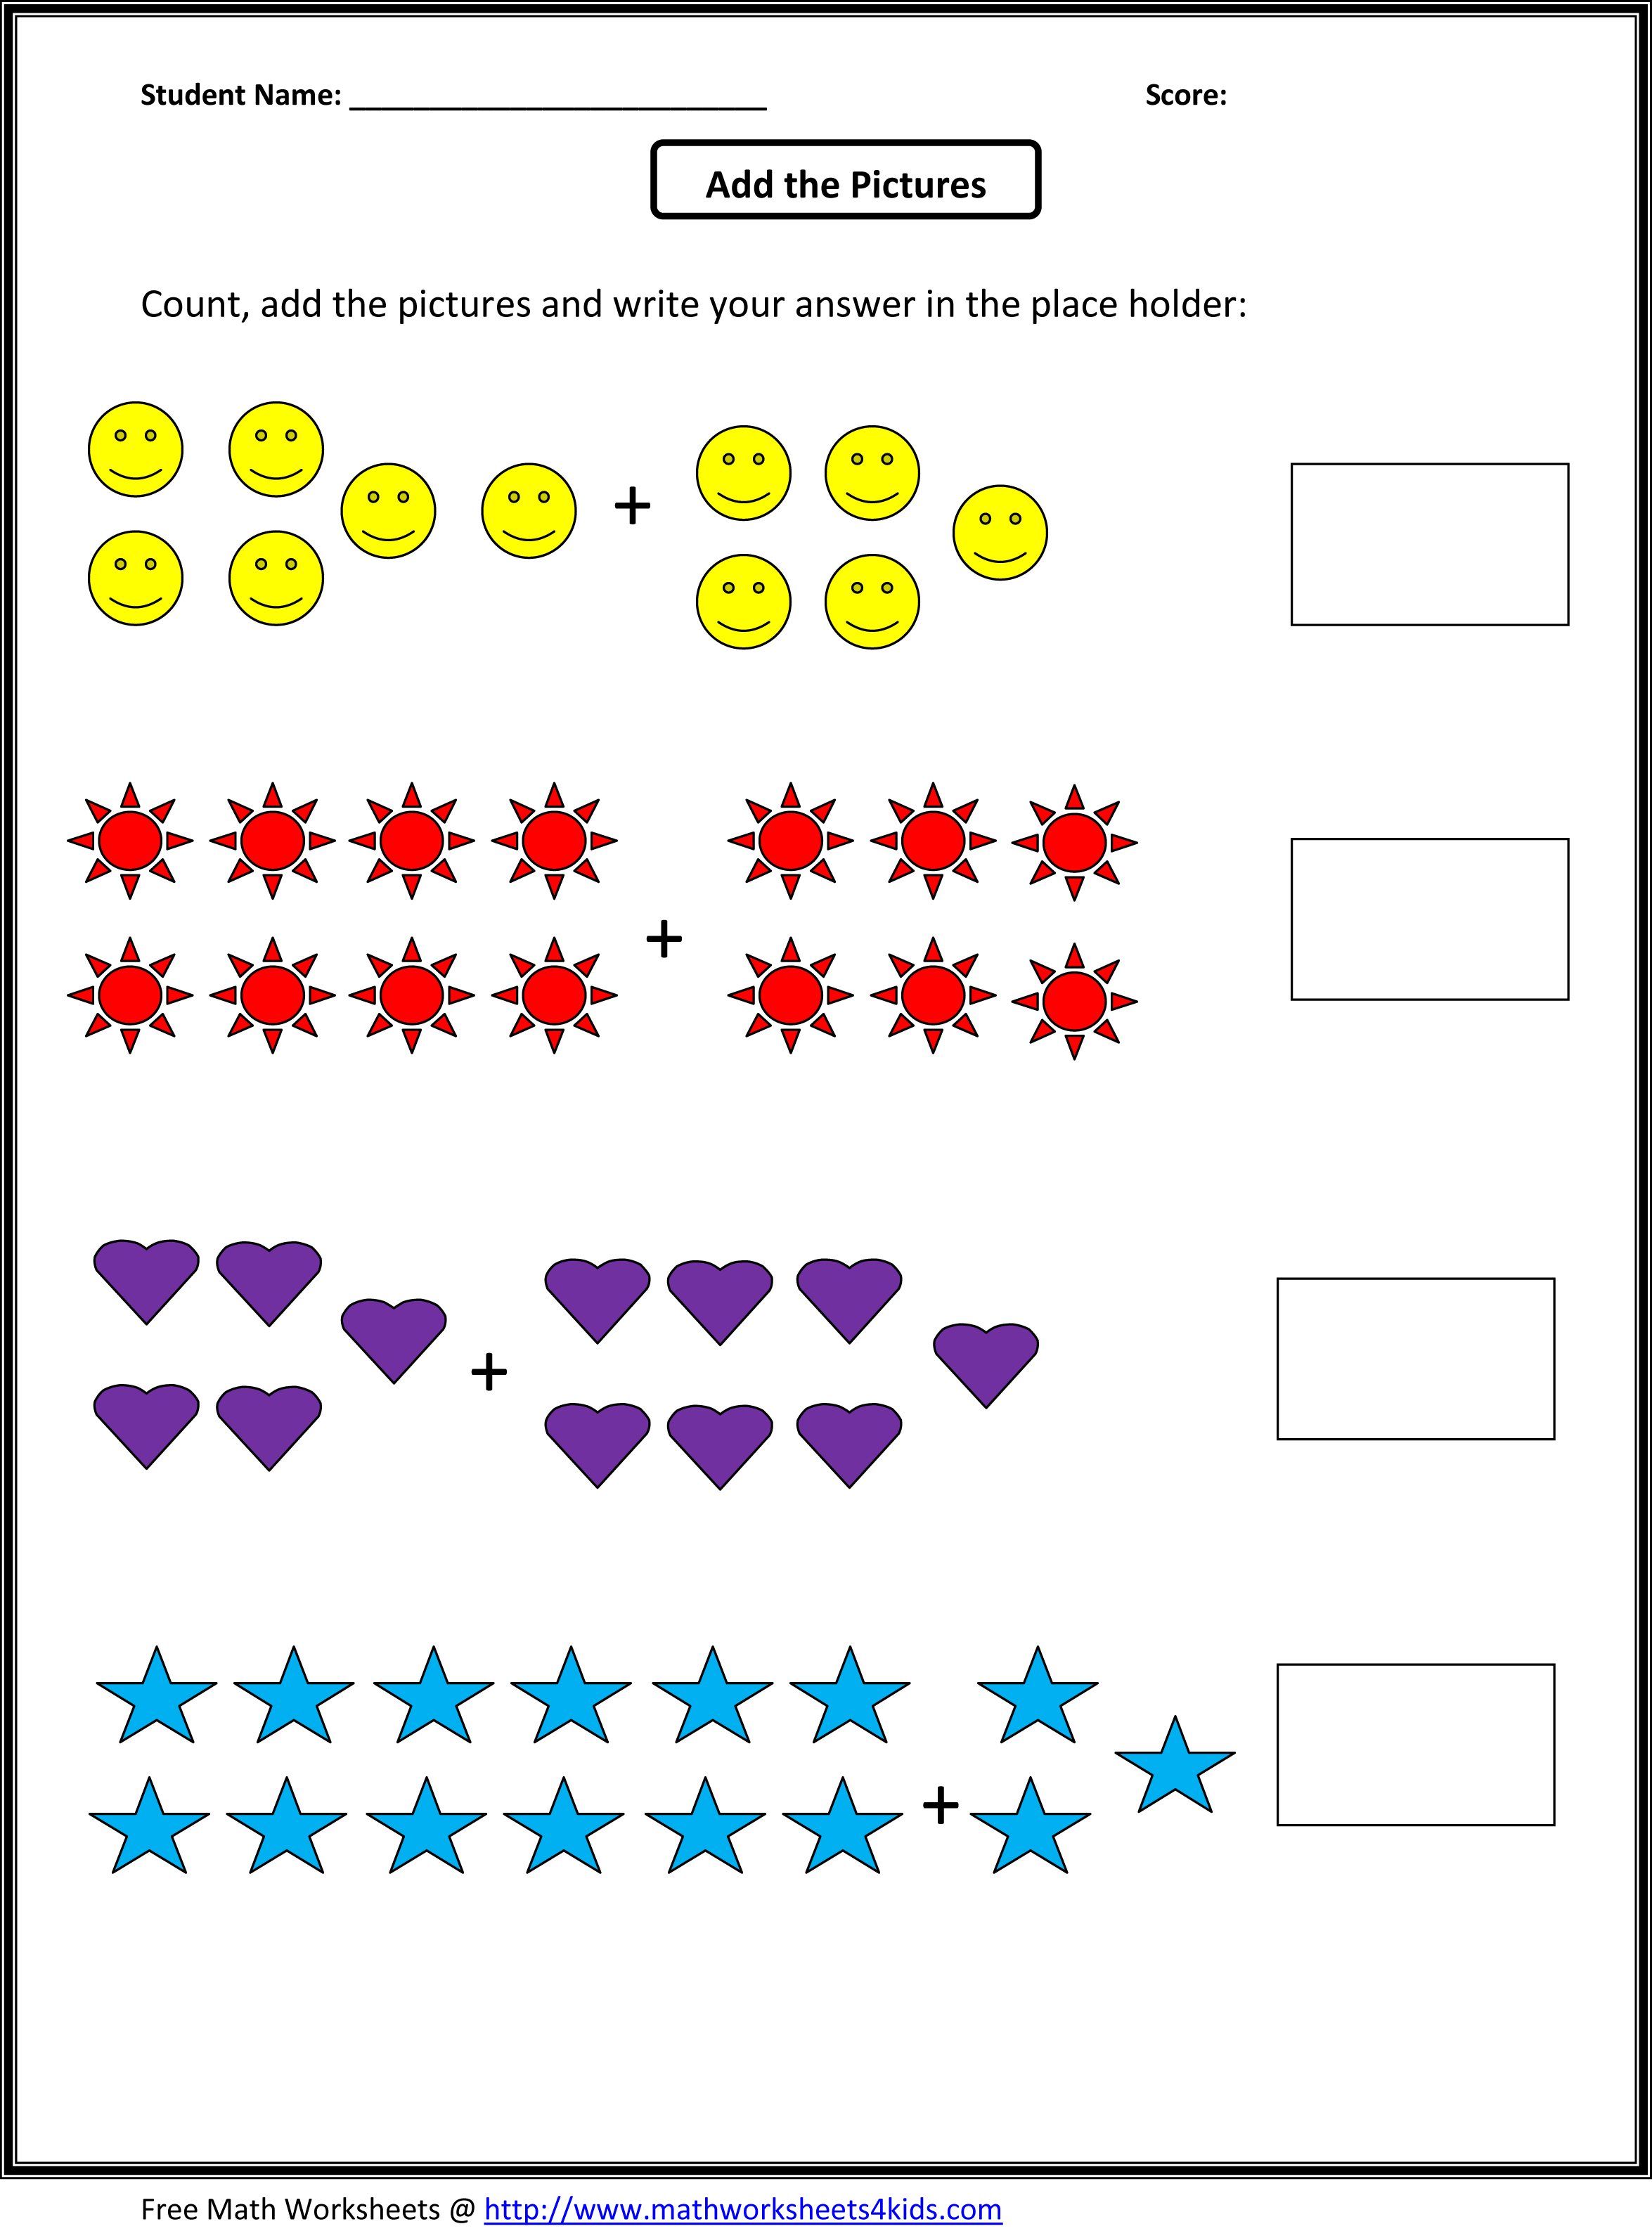 Weirdmailus  Wonderful Grade  Maths Worksheet  Reocurent With Lovely Math Worksheets For St Grade Free  Reocurent With Divine Handwriting Words Worksheets Also Spoken English Worksheets In Addition Reading And Writing Worksheets For St Grade And Plotting Quadratic Graphs Worksheet As Well As Worksheets For Special Needs Additionally Subtraction First Grade Worksheets From Reocurentcom With Weirdmailus  Lovely Grade  Maths Worksheet  Reocurent With Divine Math Worksheets For St Grade Free  Reocurent And Wonderful Handwriting Words Worksheets Also Spoken English Worksheets In Addition Reading And Writing Worksheets For St Grade From Reocurentcom